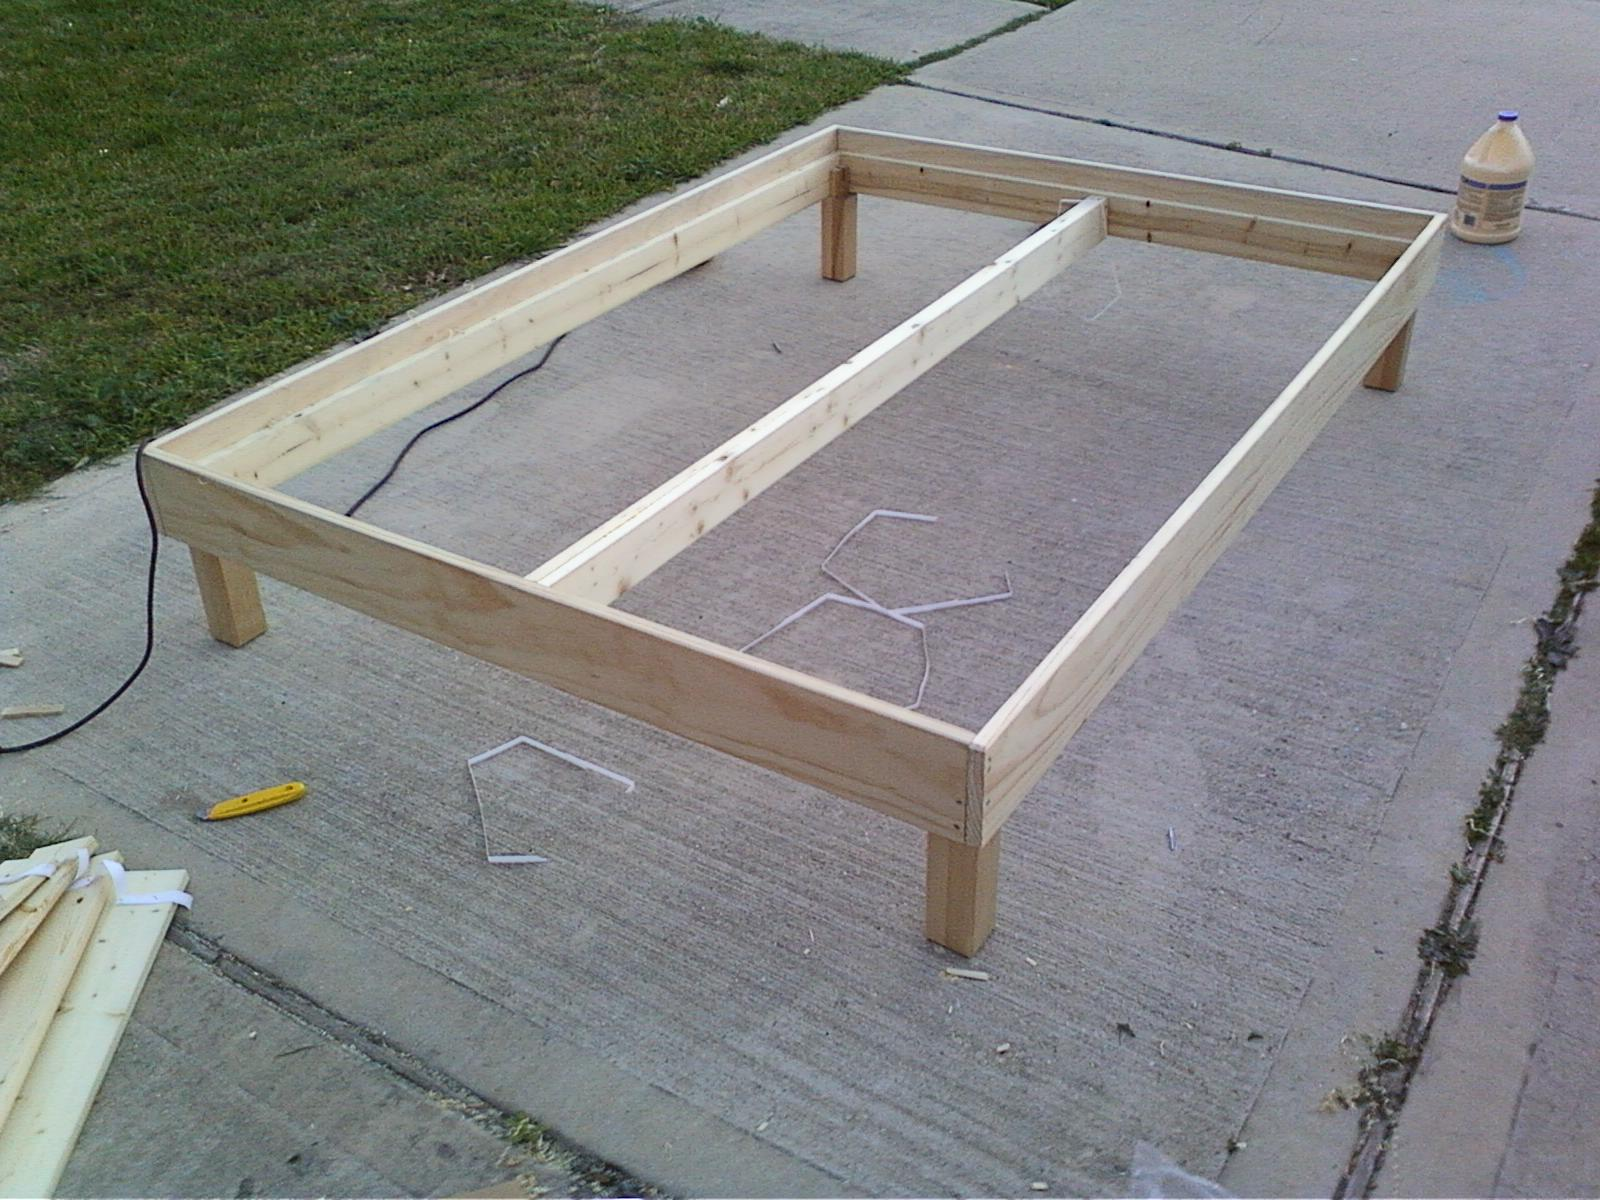 How to Make a Platform Bed With Legs